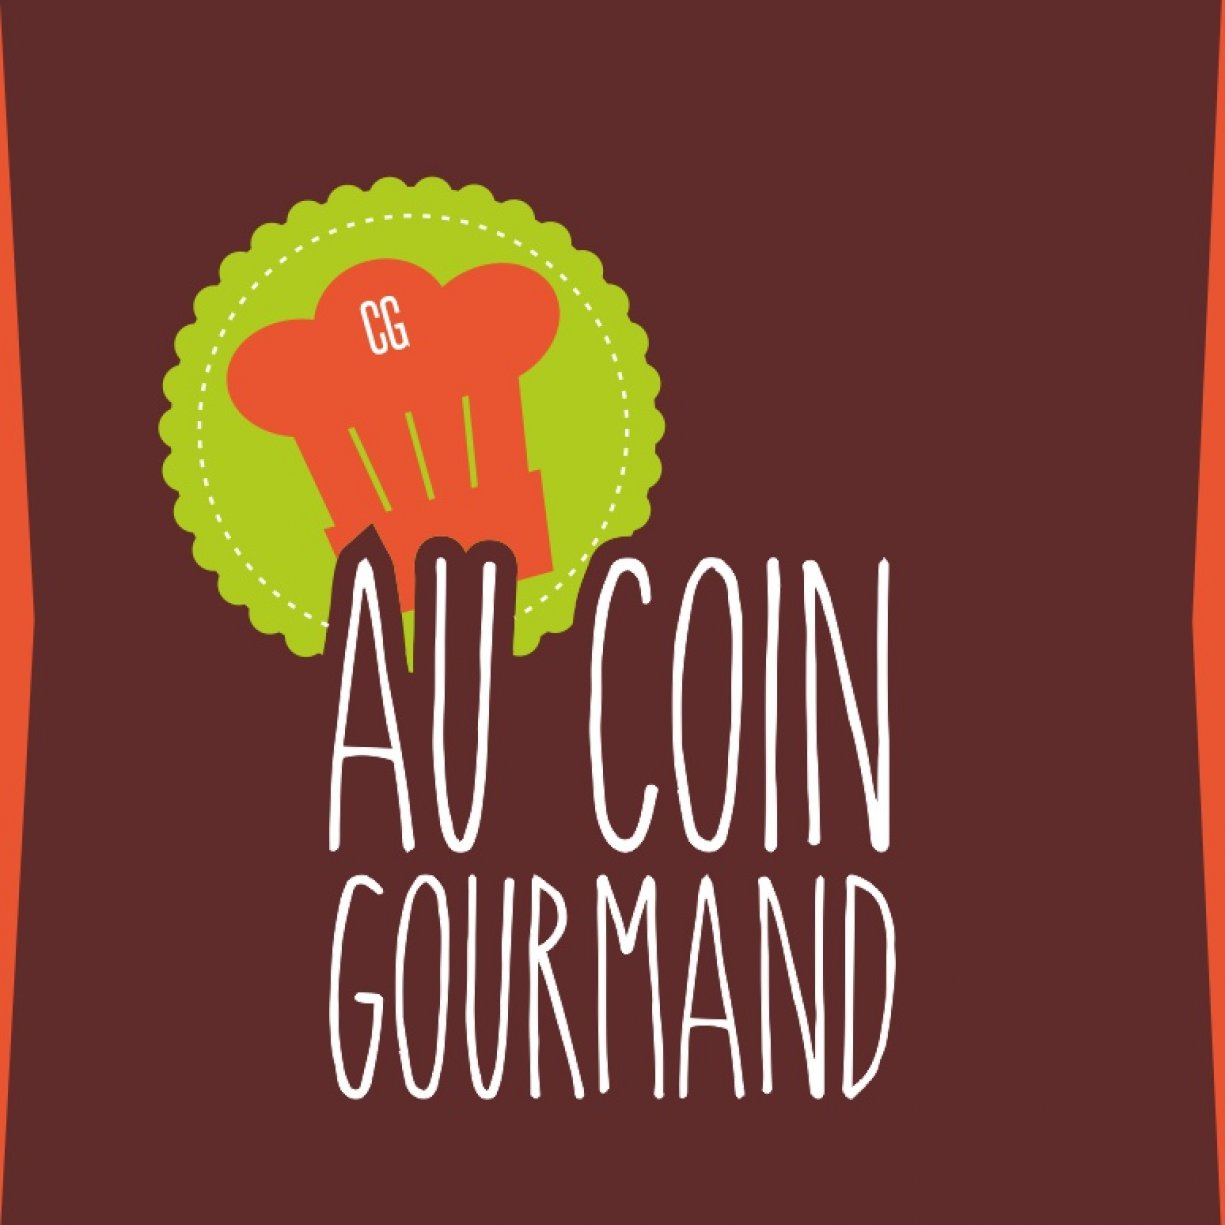 Au Coin Gourmand Restauration rapide